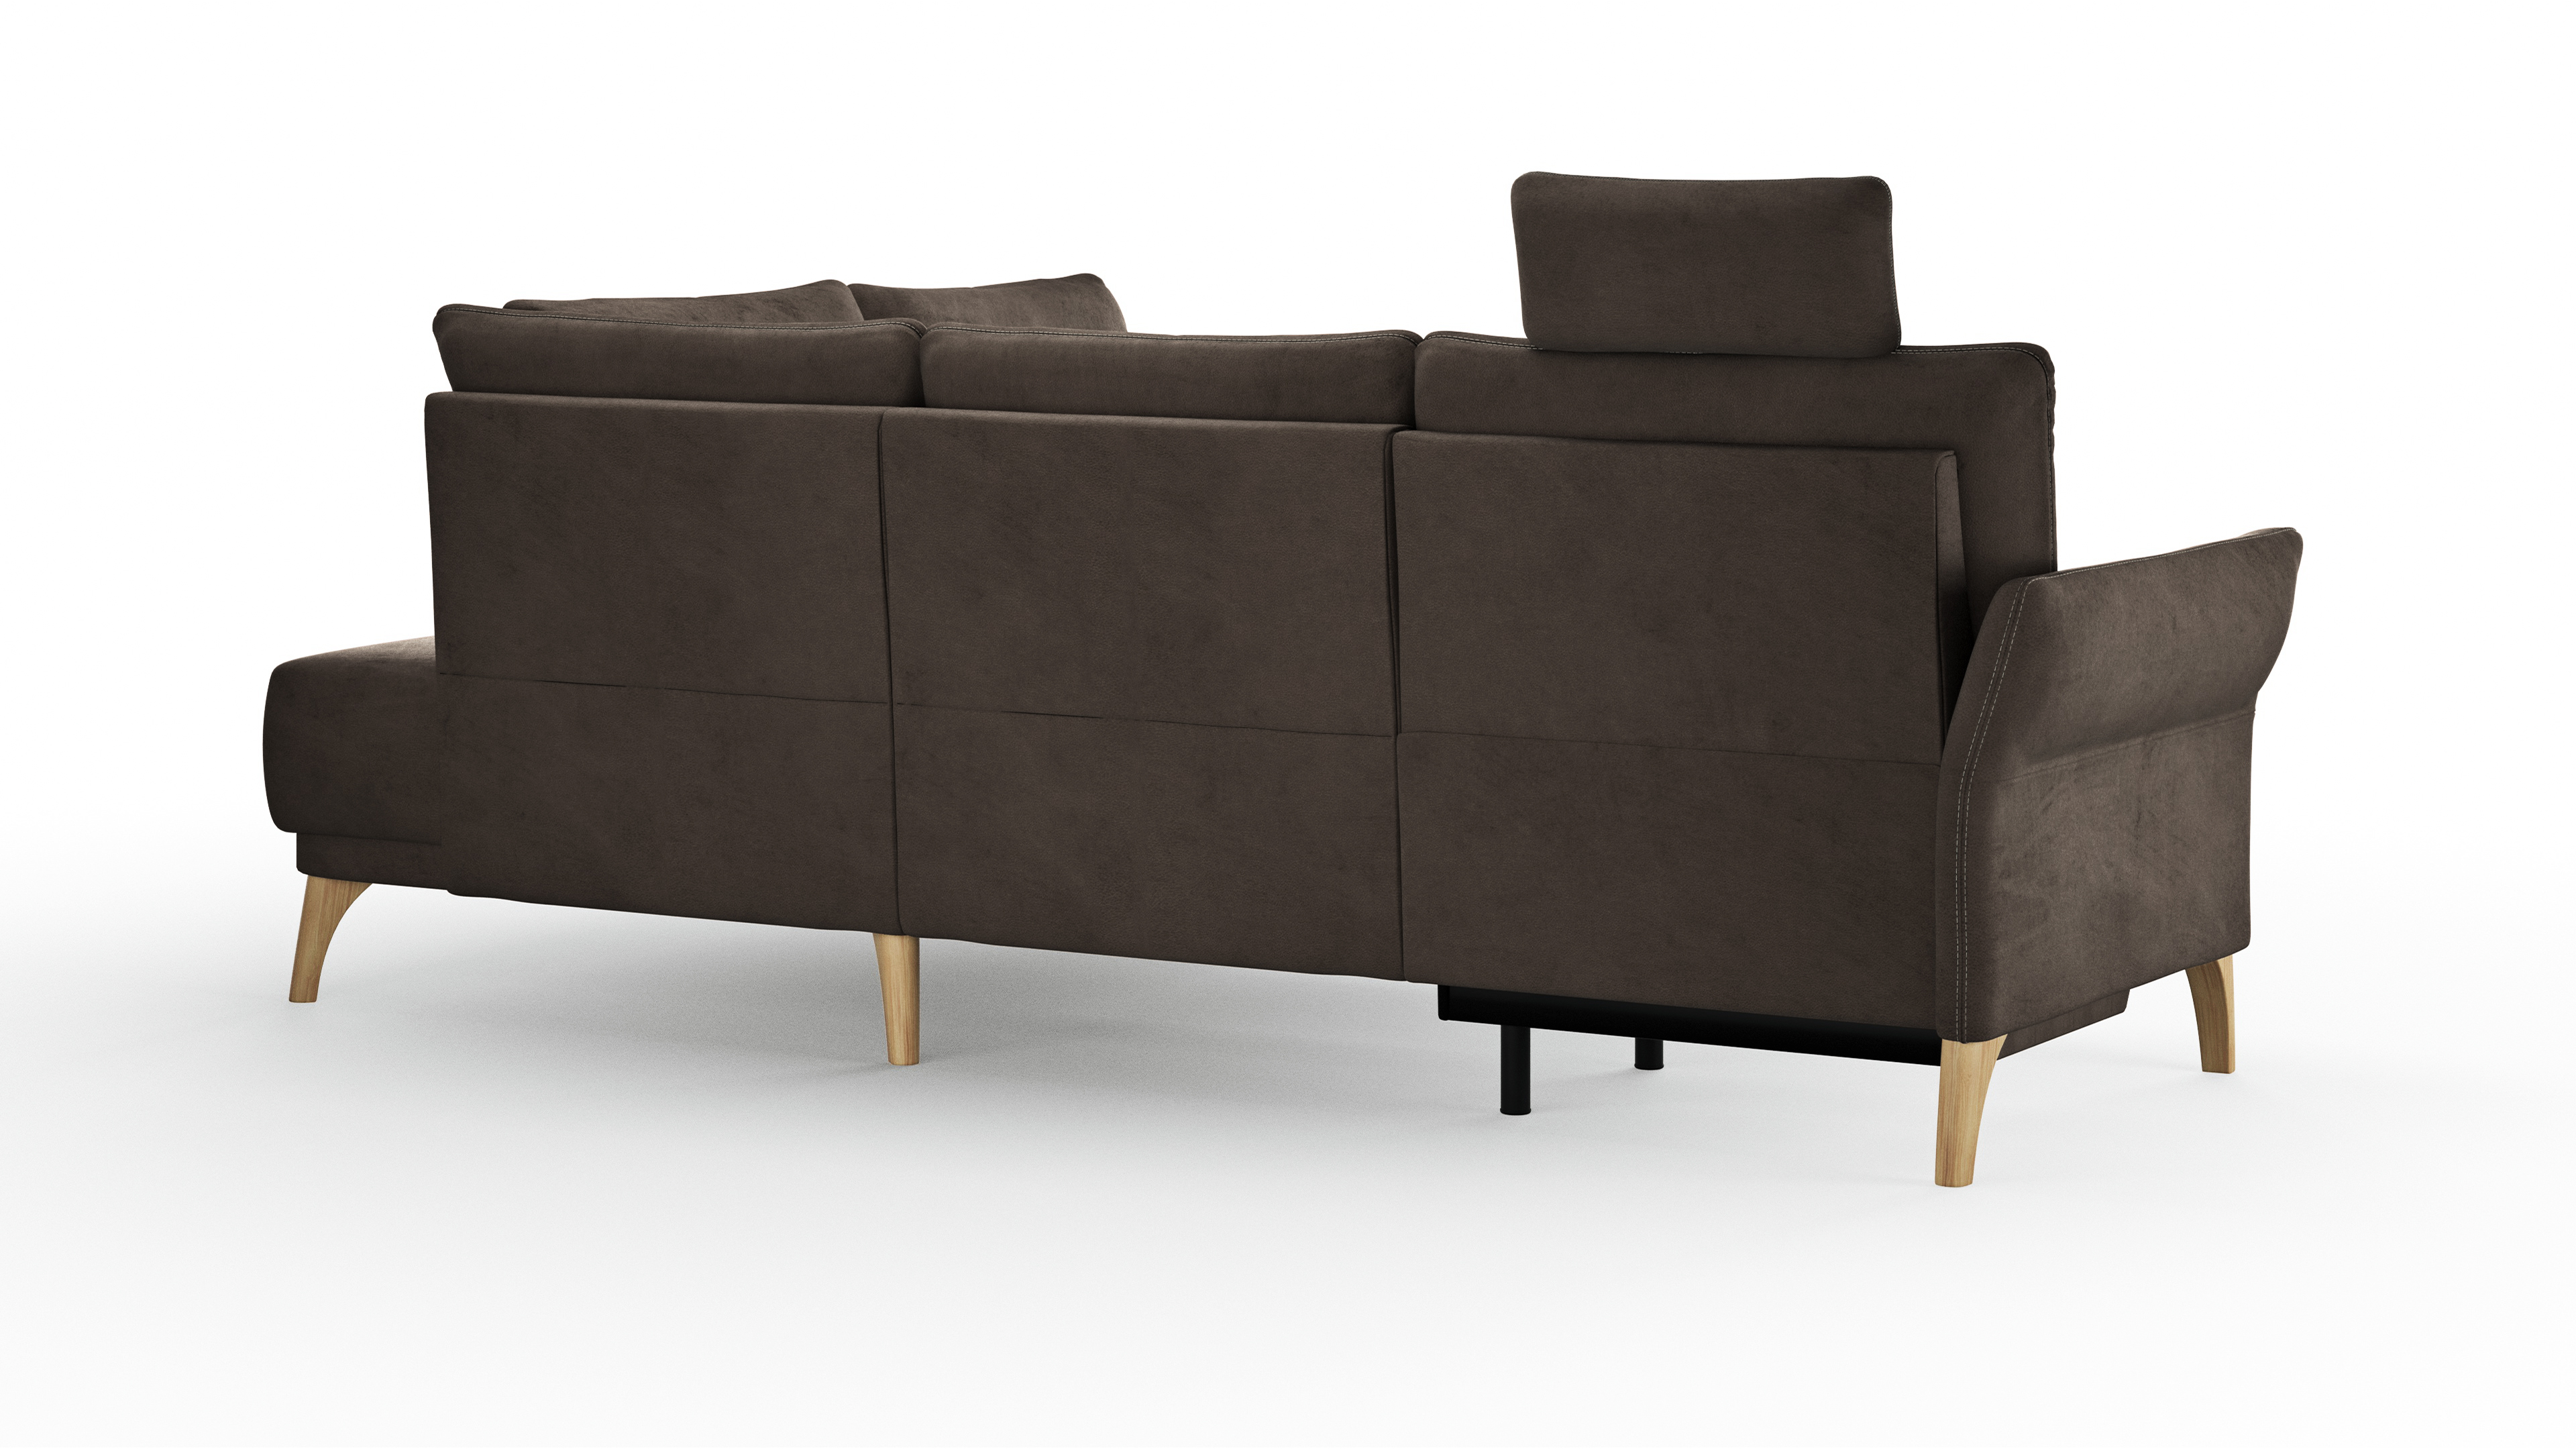 Global Comfort Ecksofa Rosario freisteller 3 102537 | Homepoet